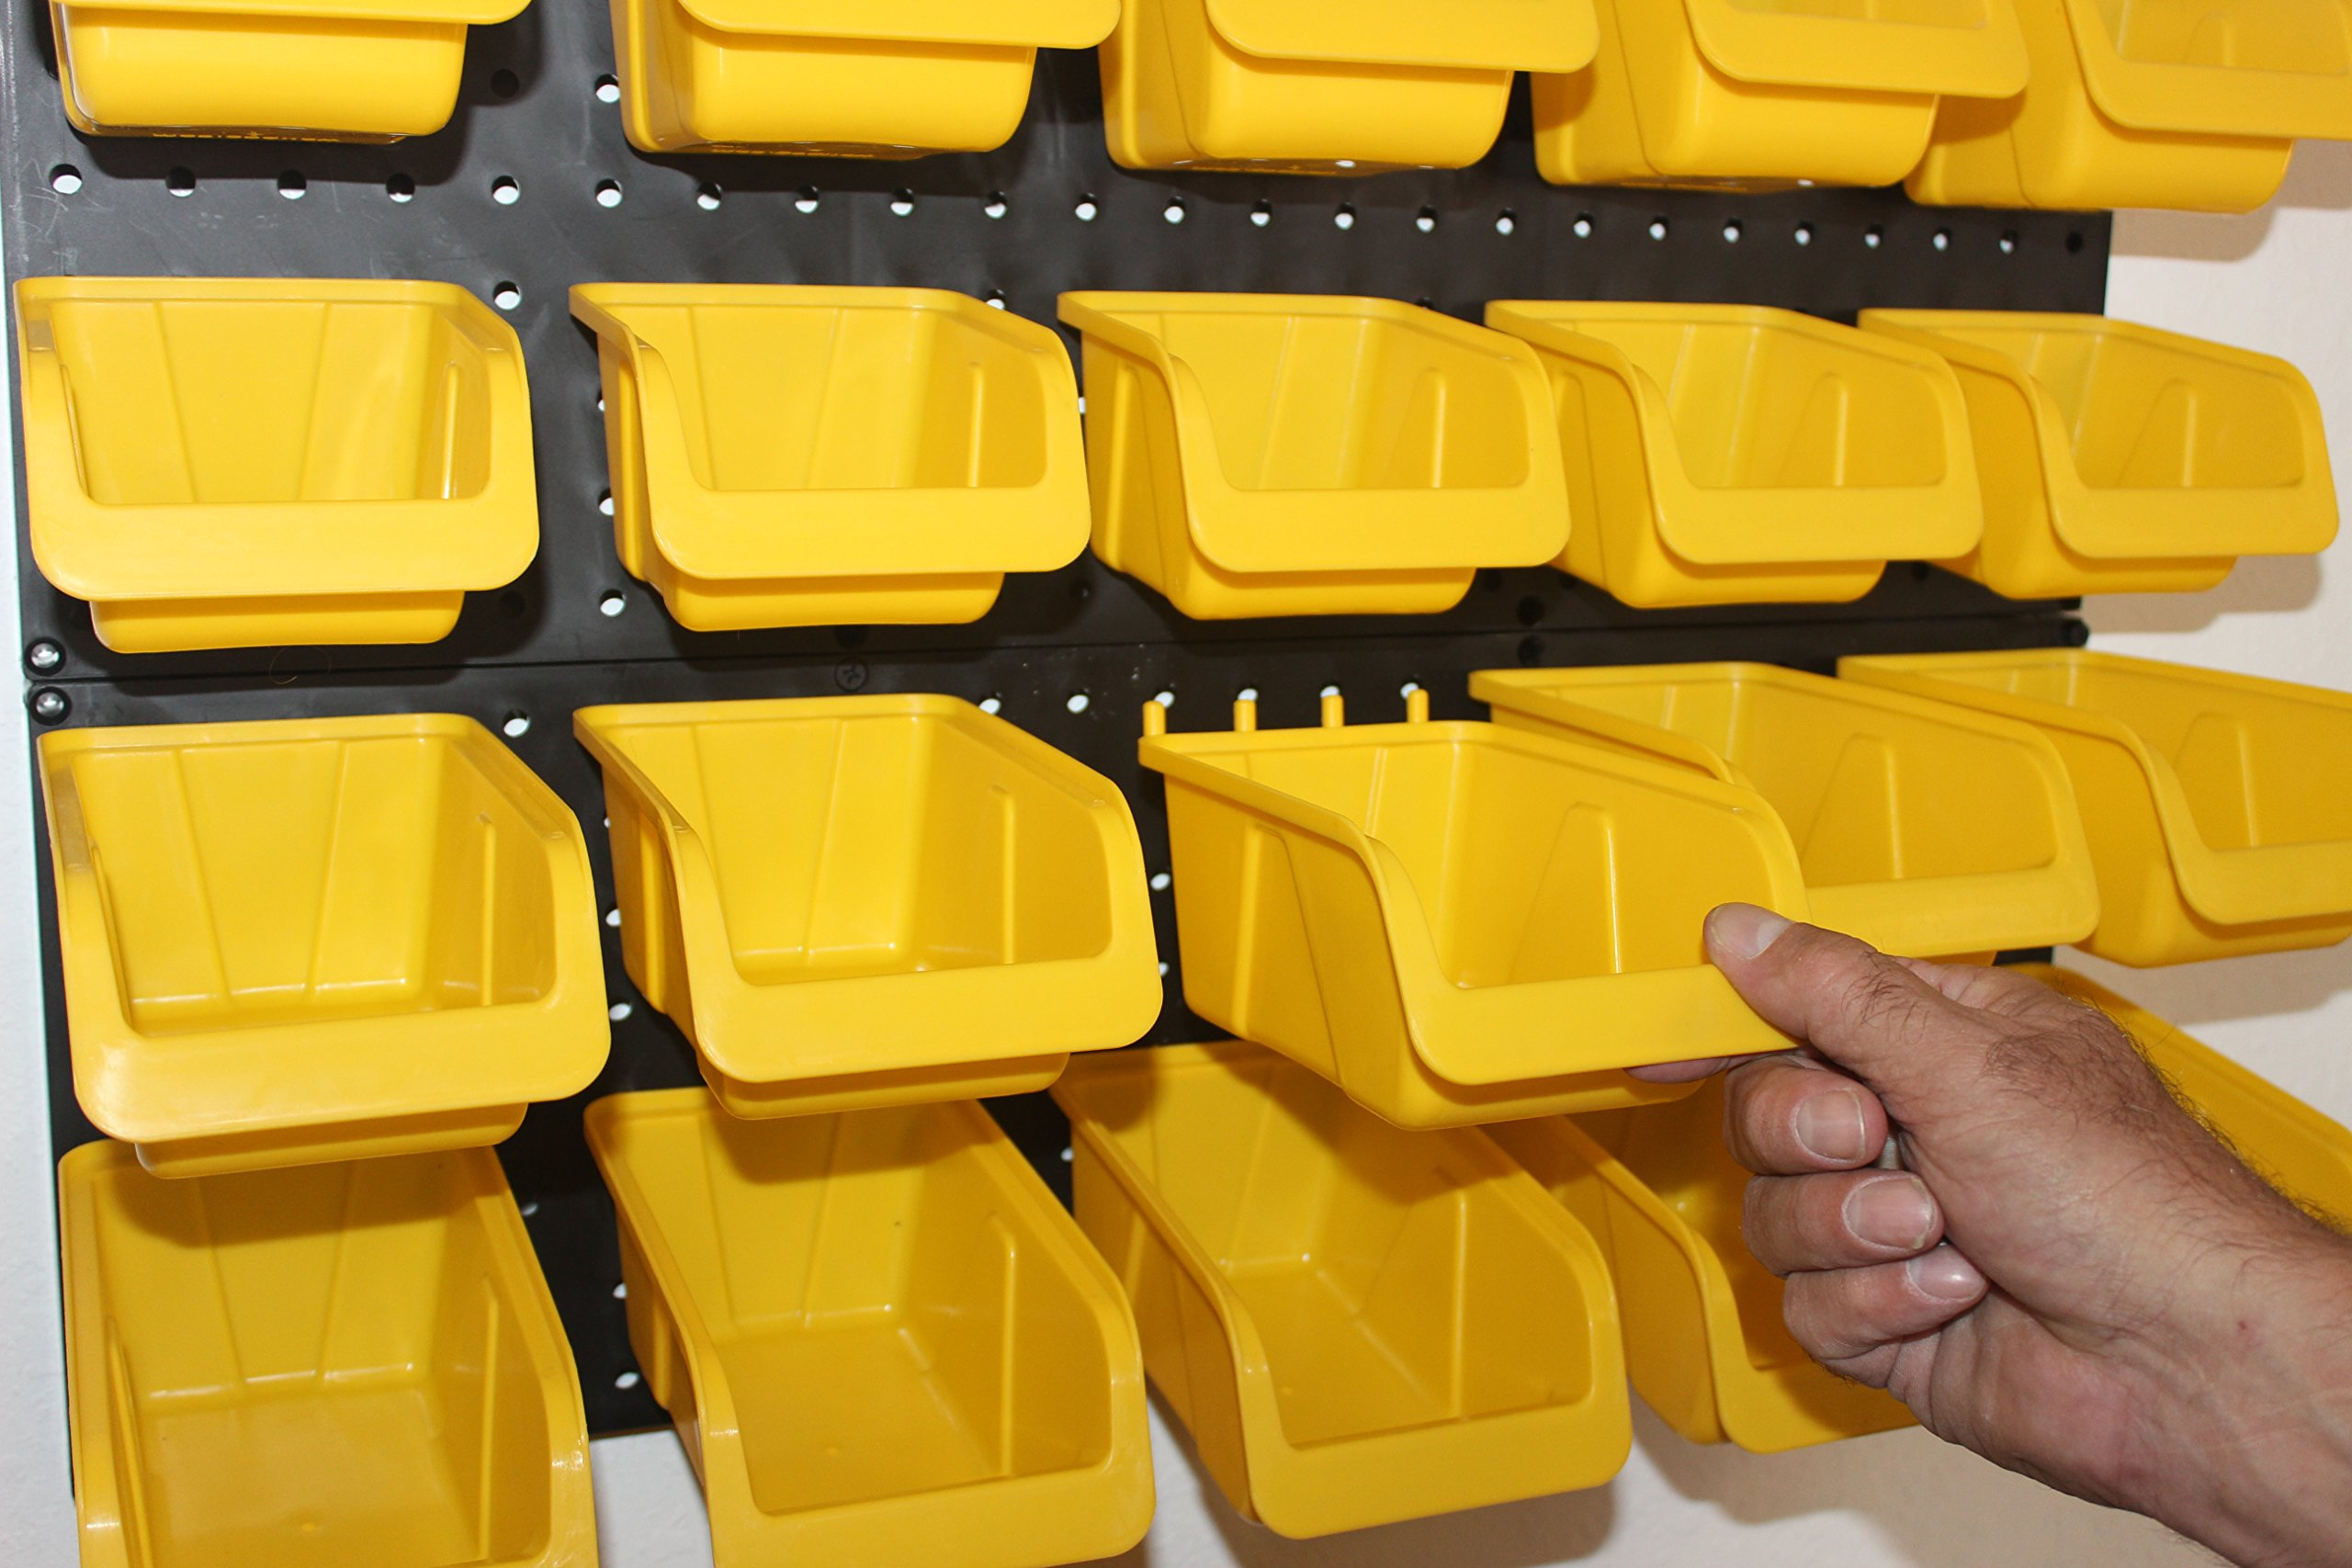 WallPeg Tool Board Accessories Plastic Pegboard Bins – Yellow Pegboard Bins 10 ea. # AM 10Y by WallPeg